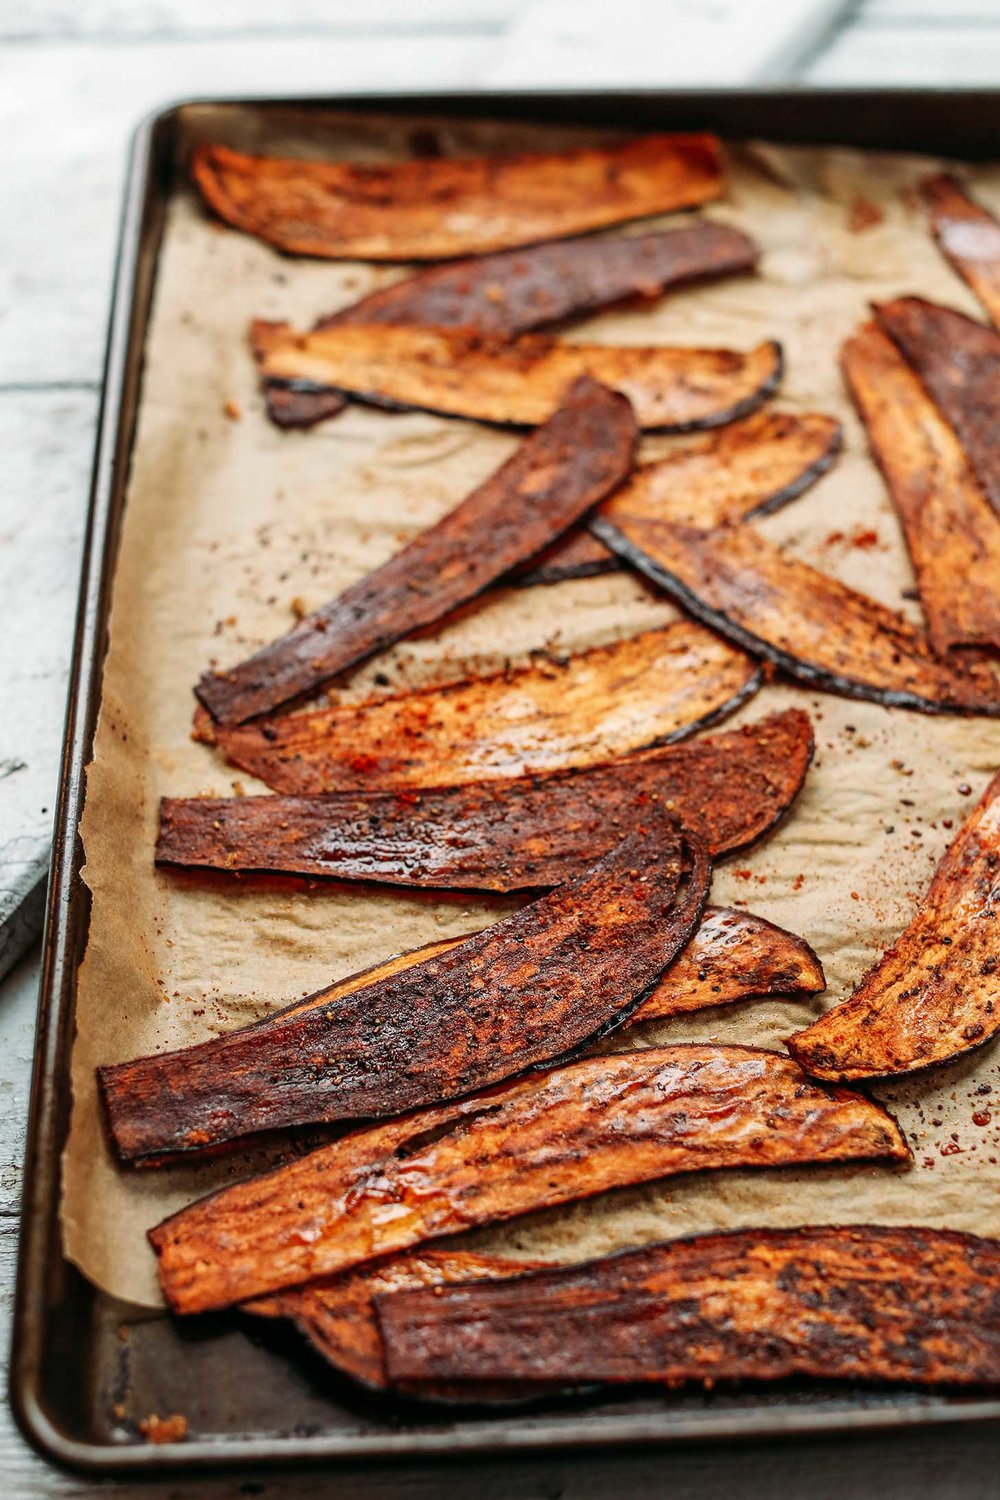 Vegan-Bacon-Eggplant.jpg